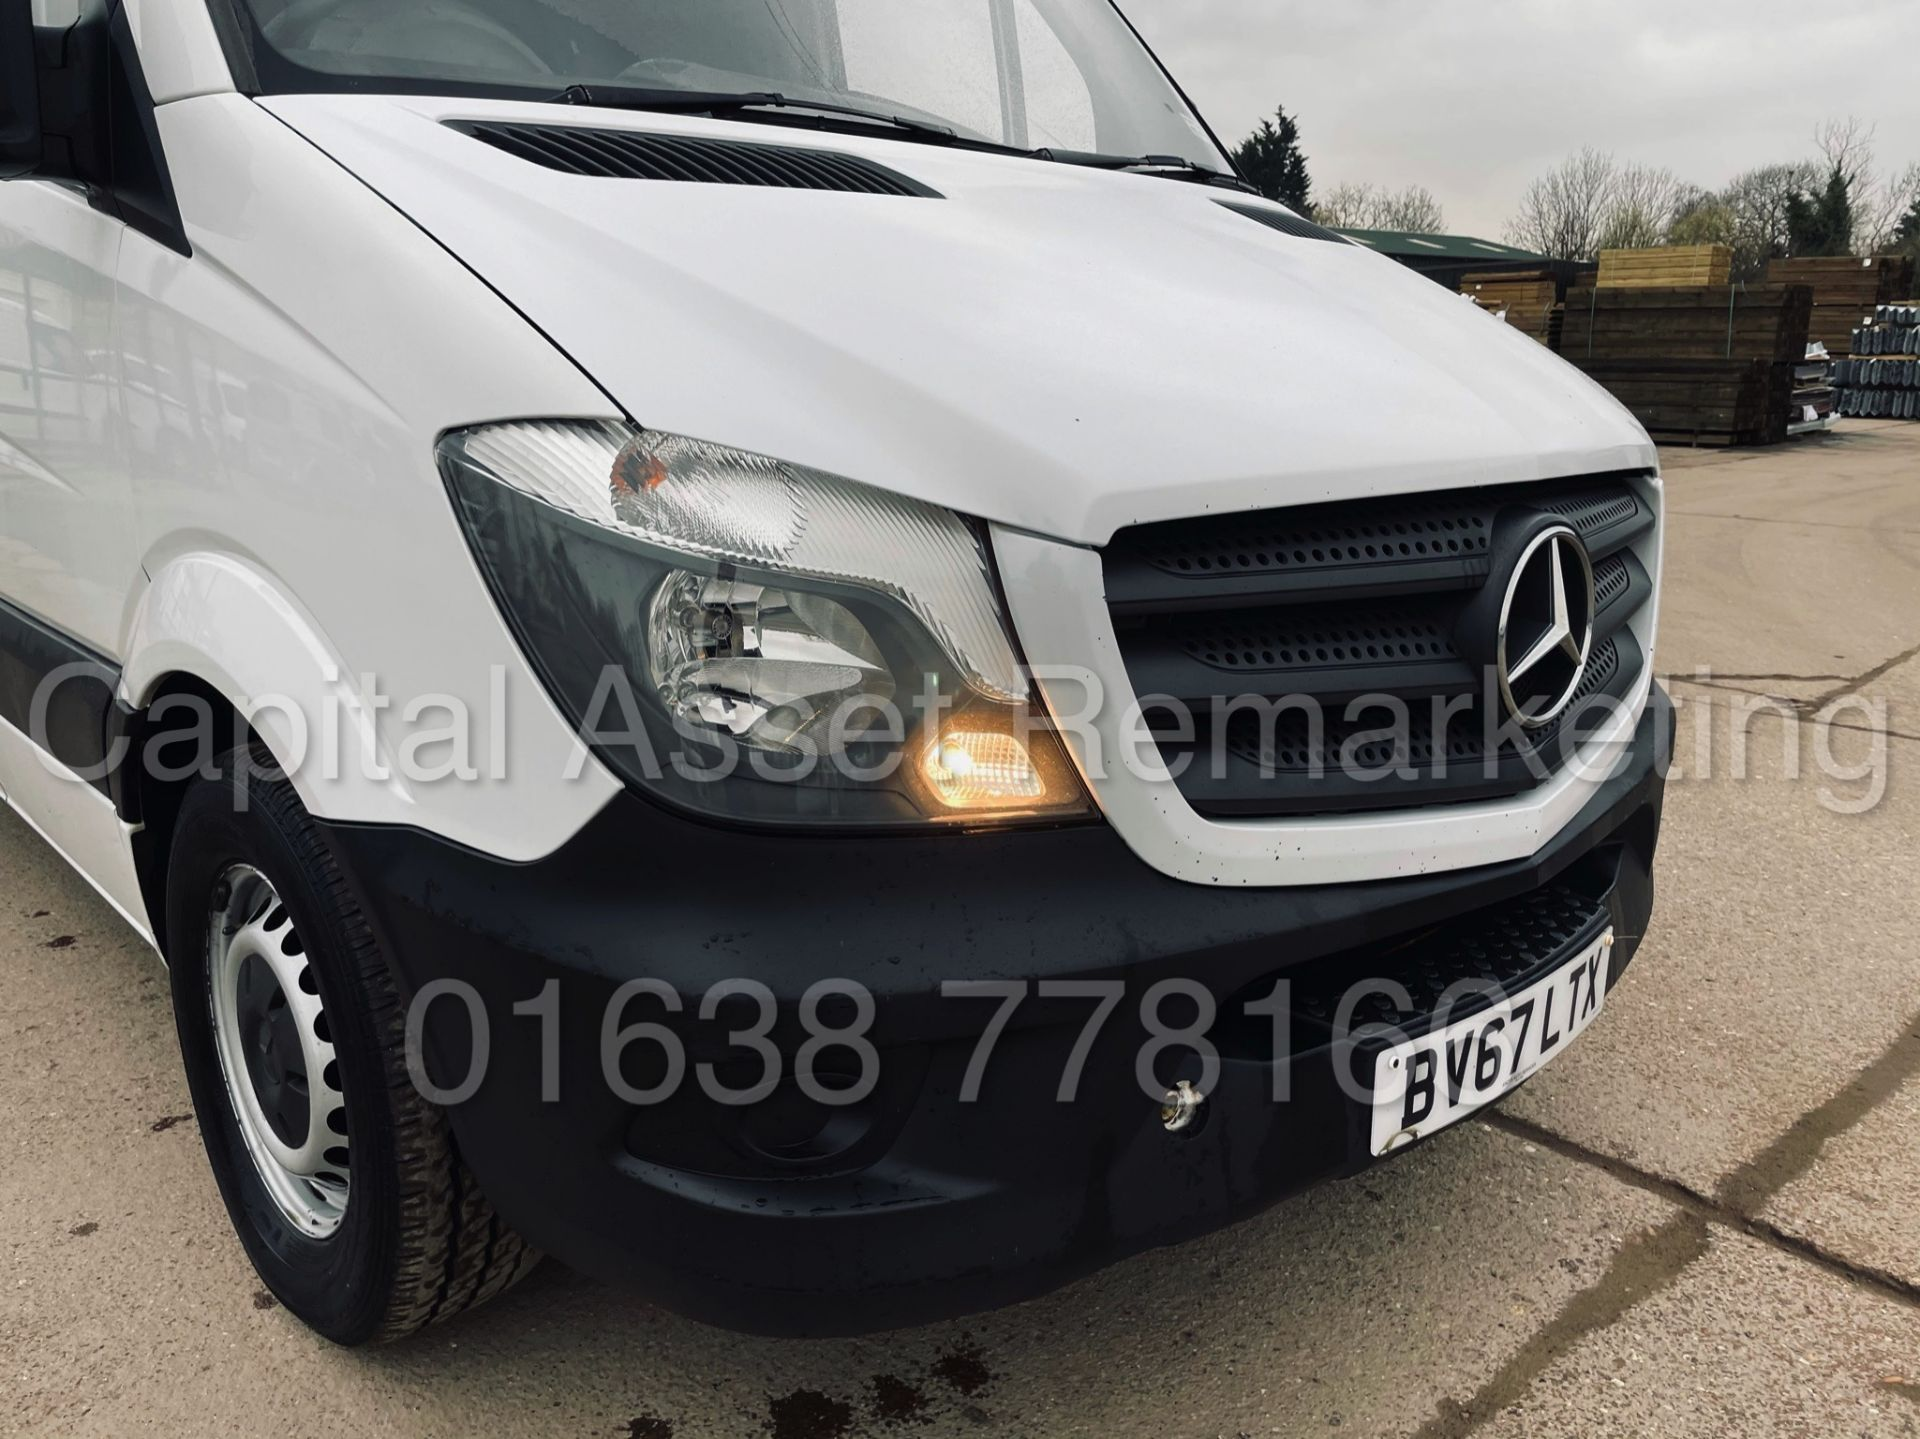 (On Sale) MERCEDES-BENZ SPRINTER 314 CDI *LWB HI-ROOF* (67 REG - EURO 6) '140 BHP-6 SPEED' (1 OWNER) - Image 15 of 37